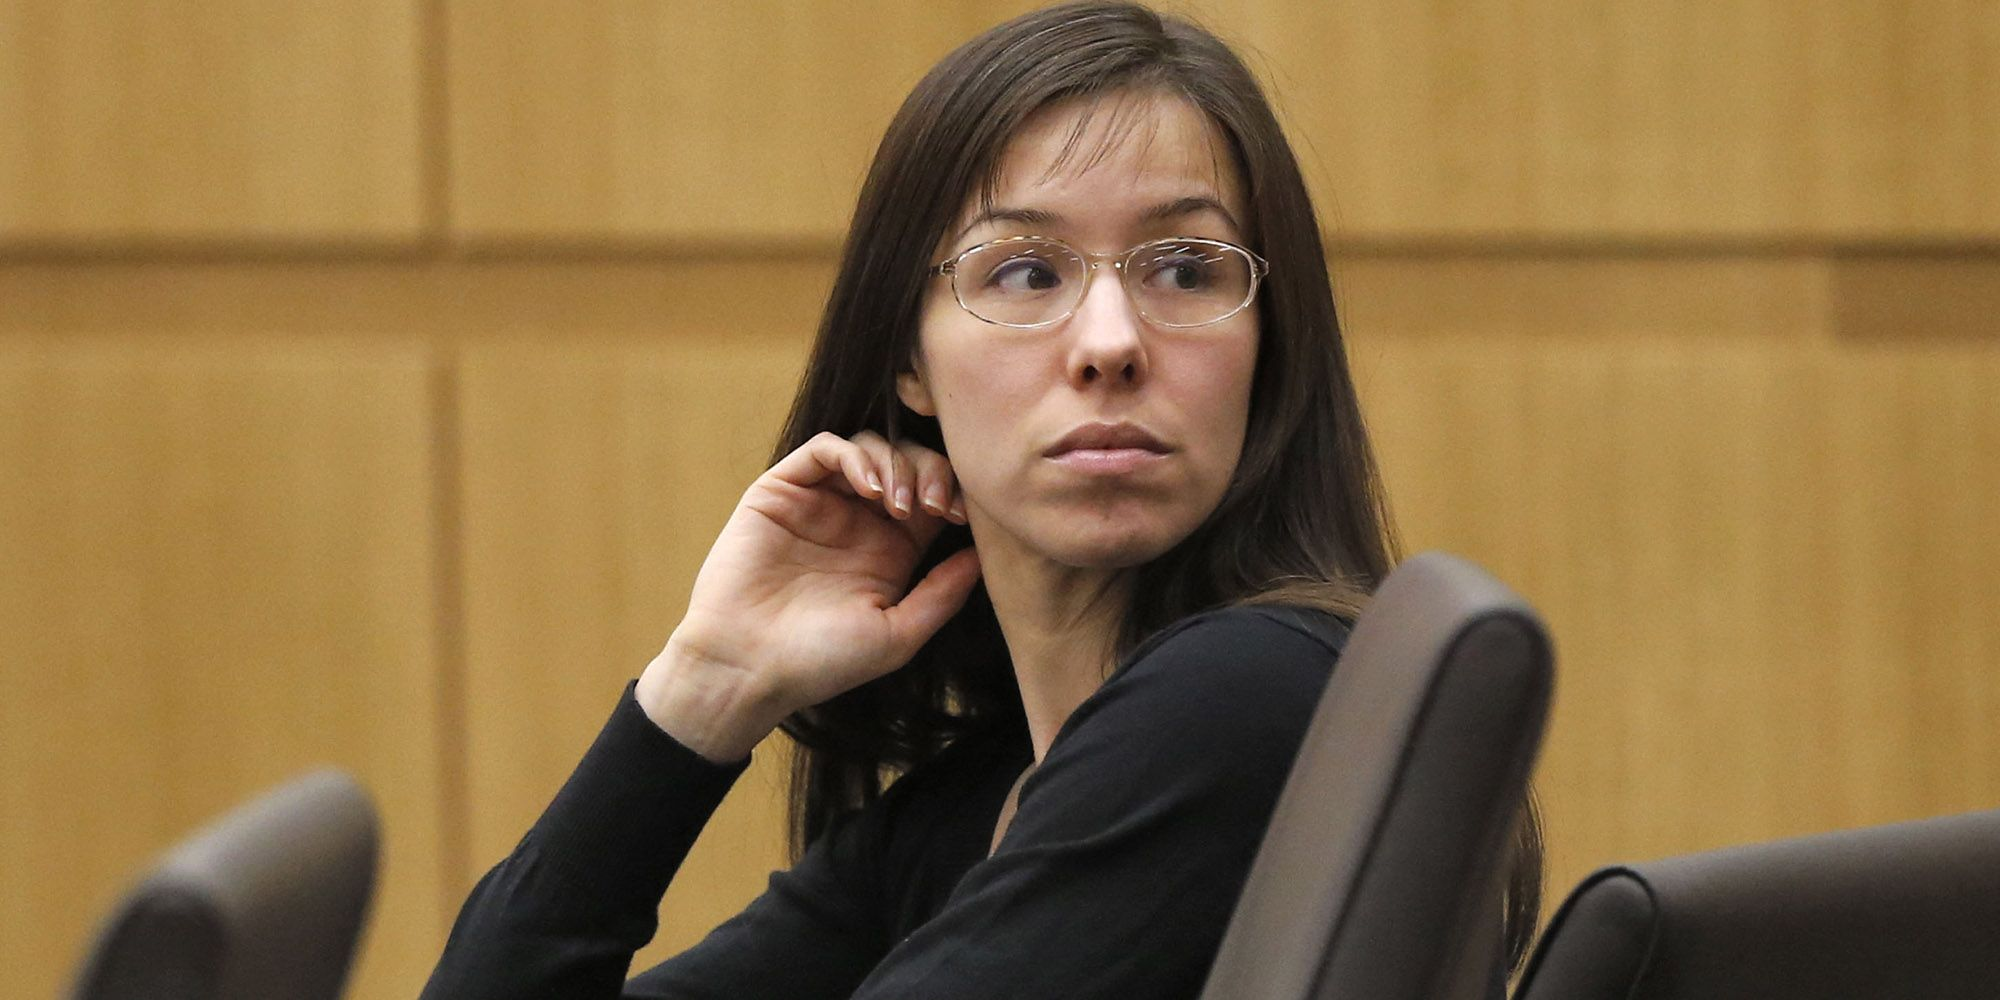 Jodi Arias Sex Pics where is jodi arias now, 10 years after she killed her